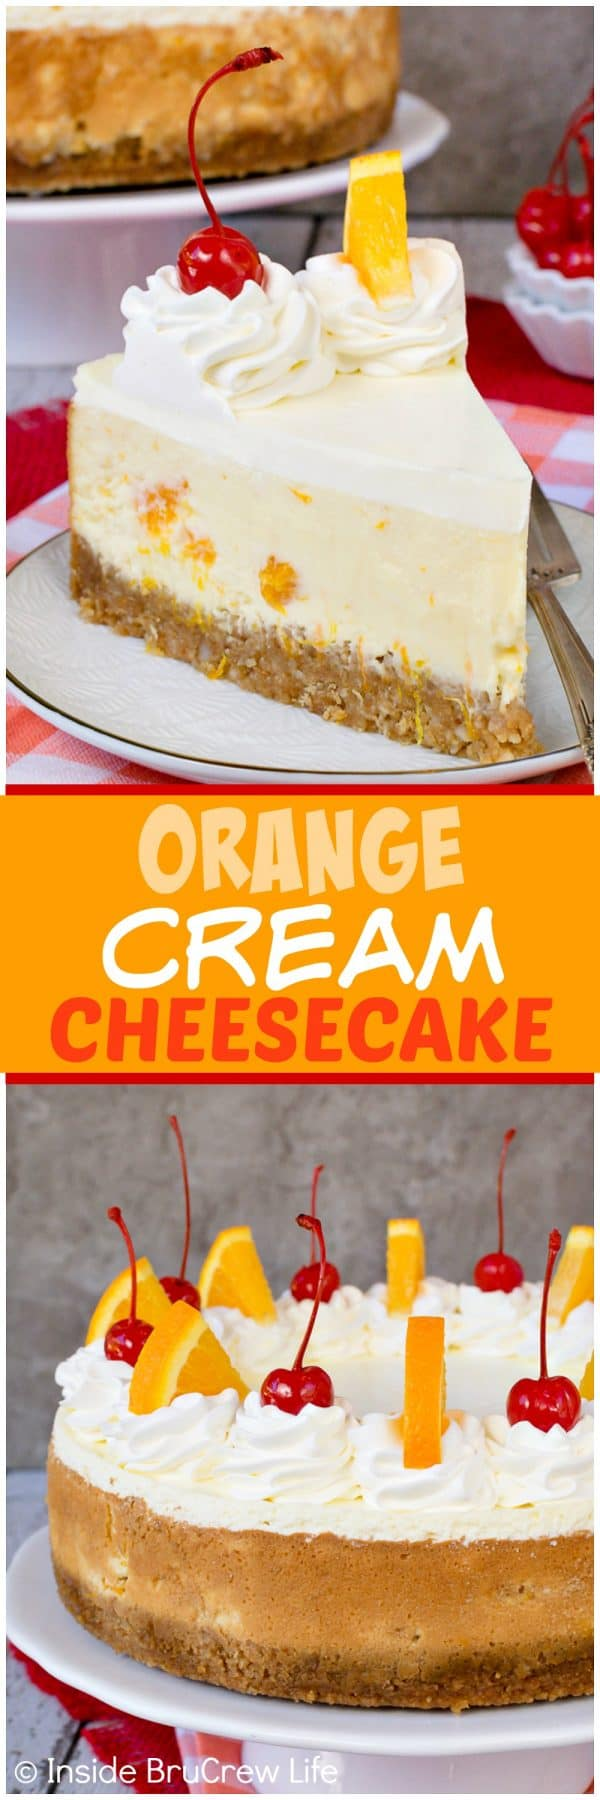 Orange Cream Cheesecake - this creamy orange cheesecake is loaded with orange chunks and has a crunchy nut crust that makes it taste amazing. Easy dessert recipe to make for spring and summer parties and picnics. #cheesecake #orange #macadamianuts #dessert #recipe #orange #spring #summer